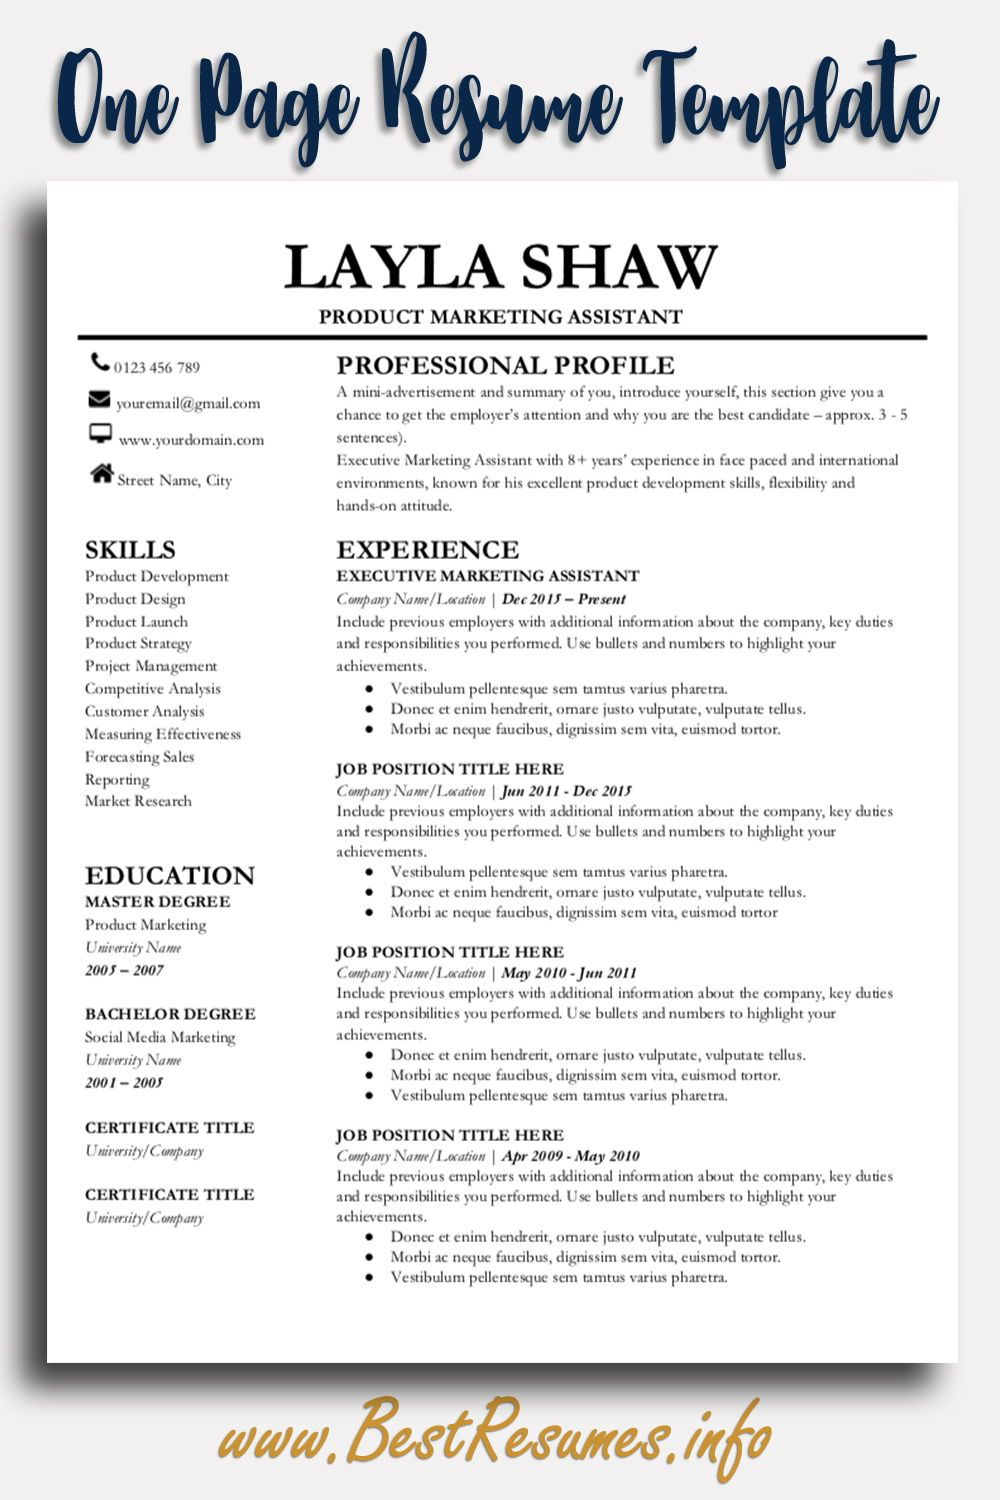 professional resume template layla shaw bestresumes info business first job number Resume Resume Page Number Location